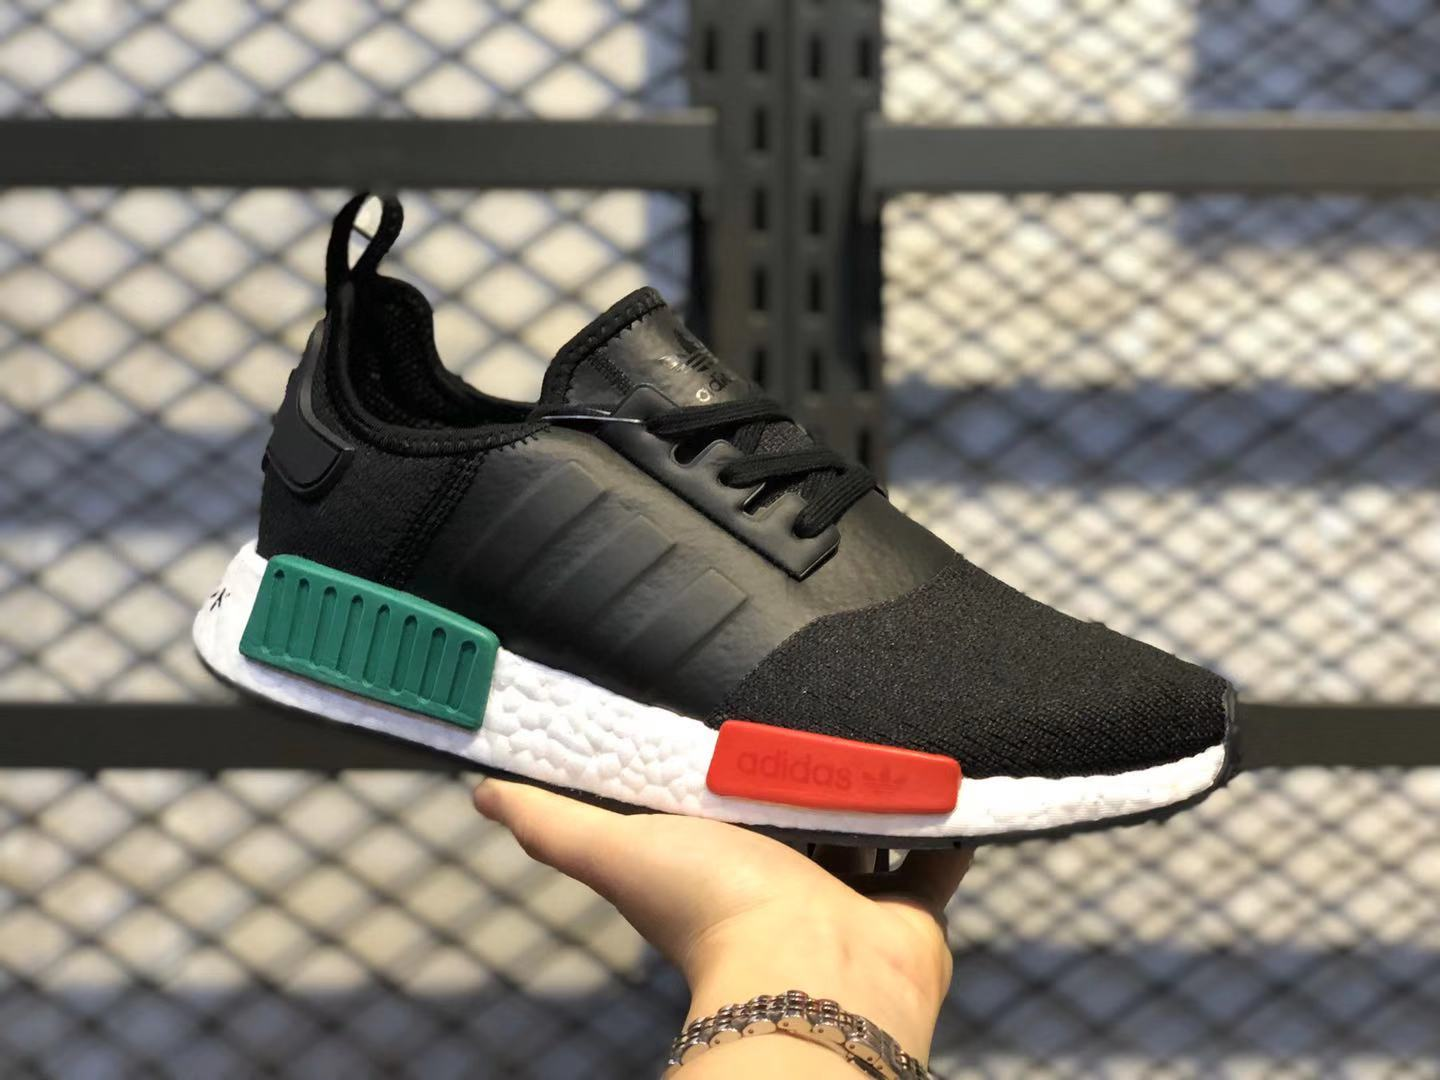 Adidas NMD R1 Core Black/Glory Green-Lush Red Running Shoes In Stock EF4260